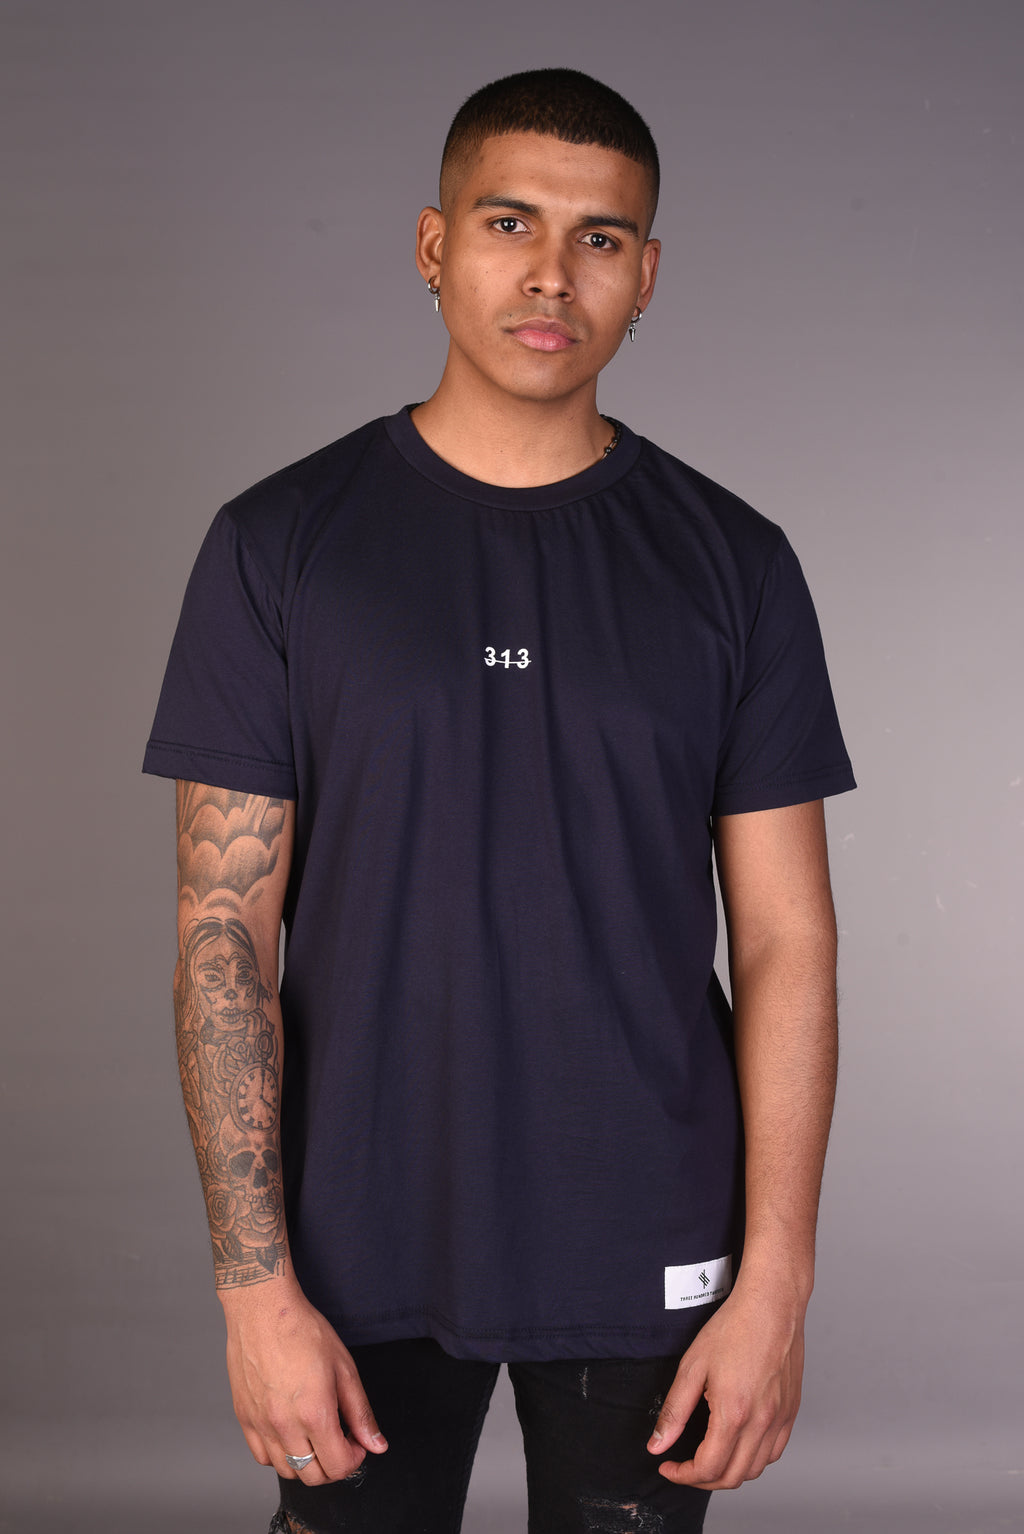 313 Recognise Greatness T-Shirt - Navy